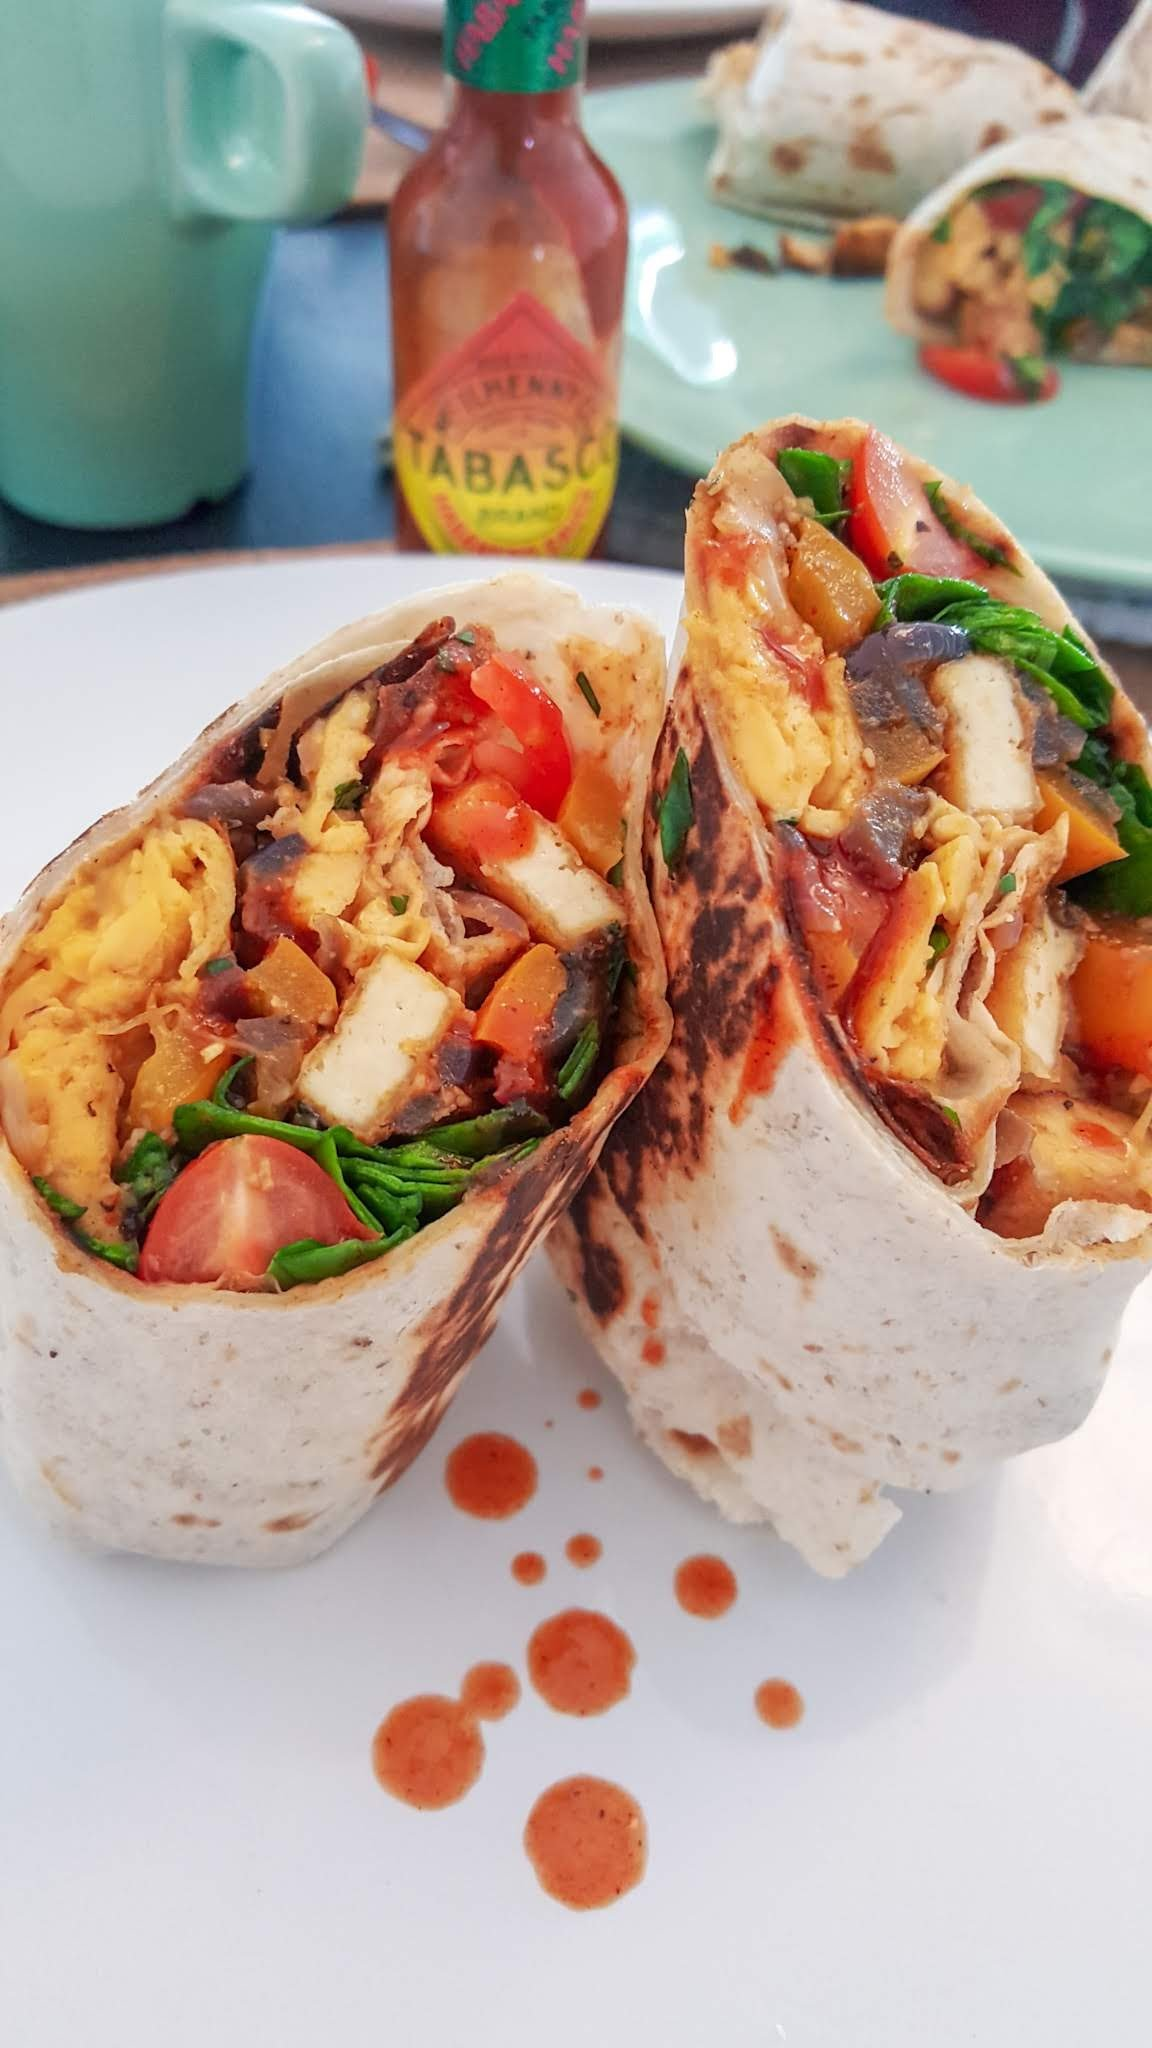 Tofu in a breakfast burrito